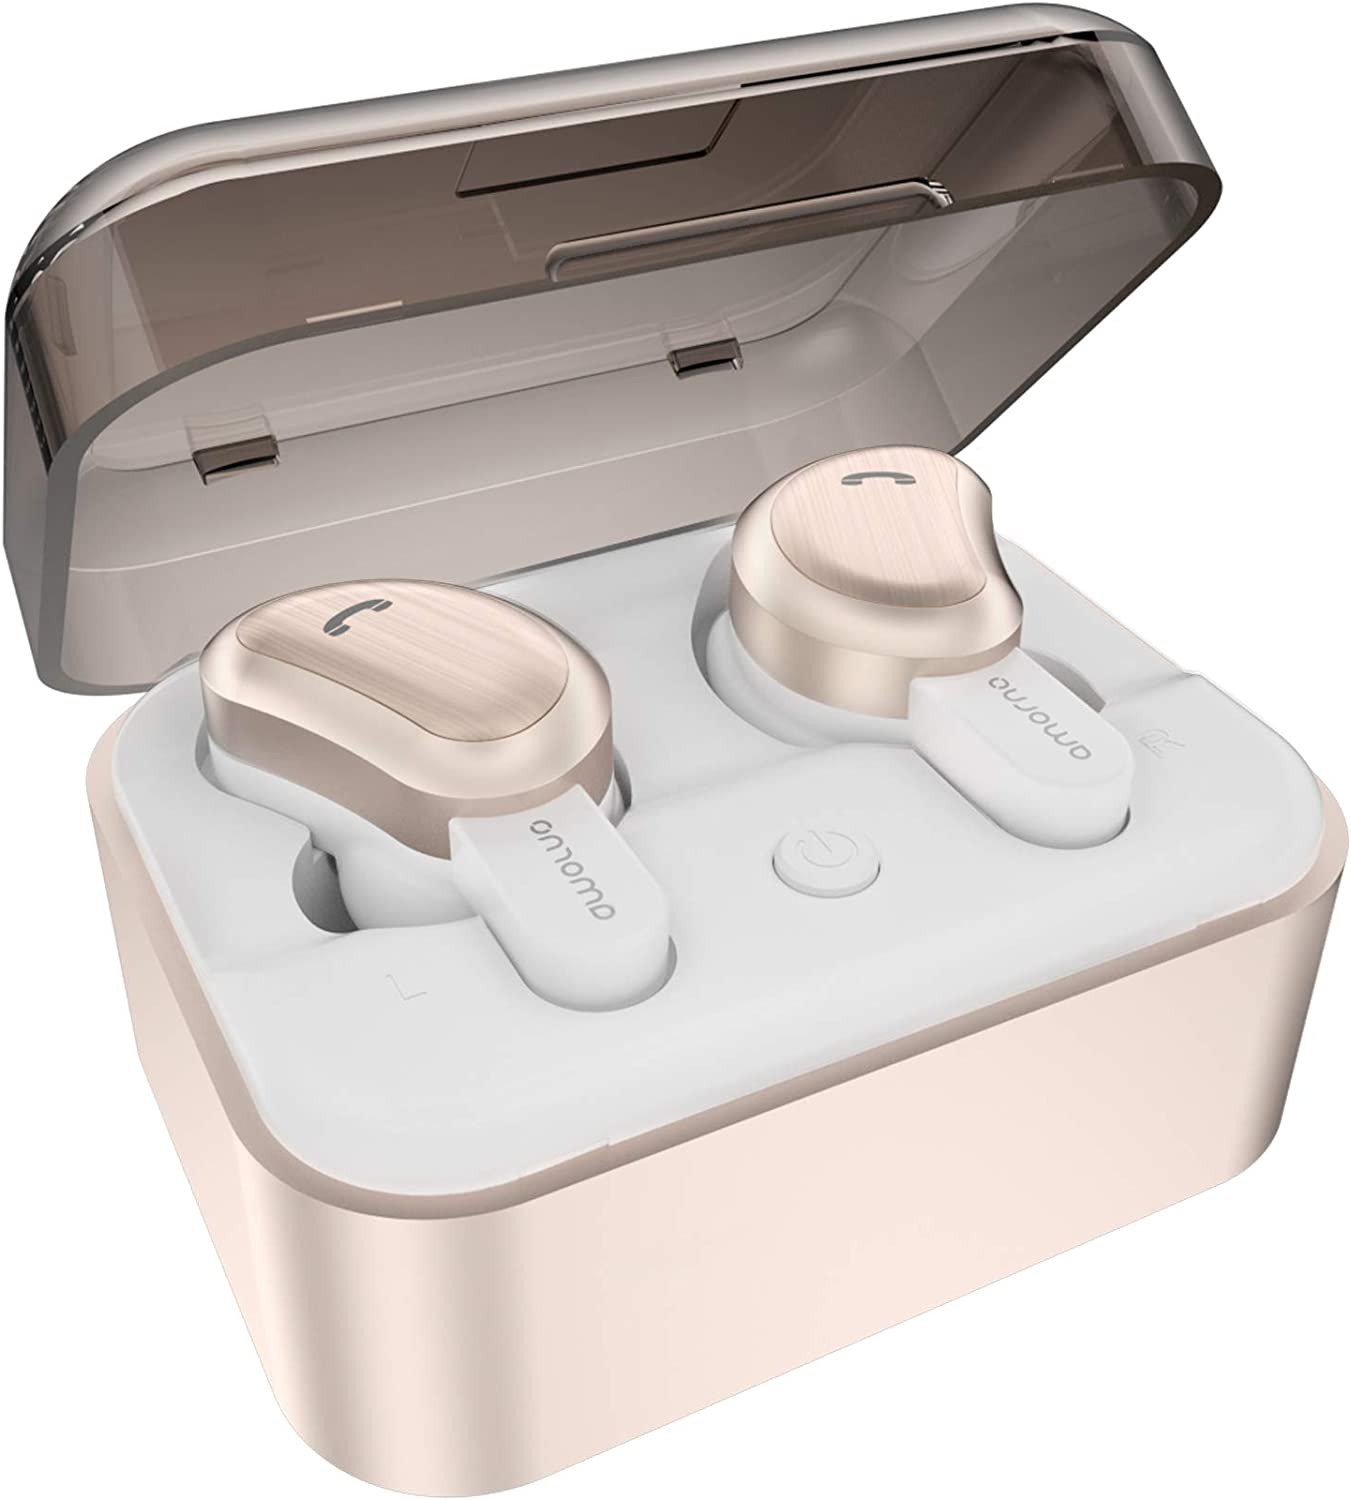 Wireless Earbuds, AMORNO True Bluetooth Headphones in-Ear Deep Bass Noise Cancelling Earphones Mini Sweatproof Sports Headsets with Charging Case Built-in Mic